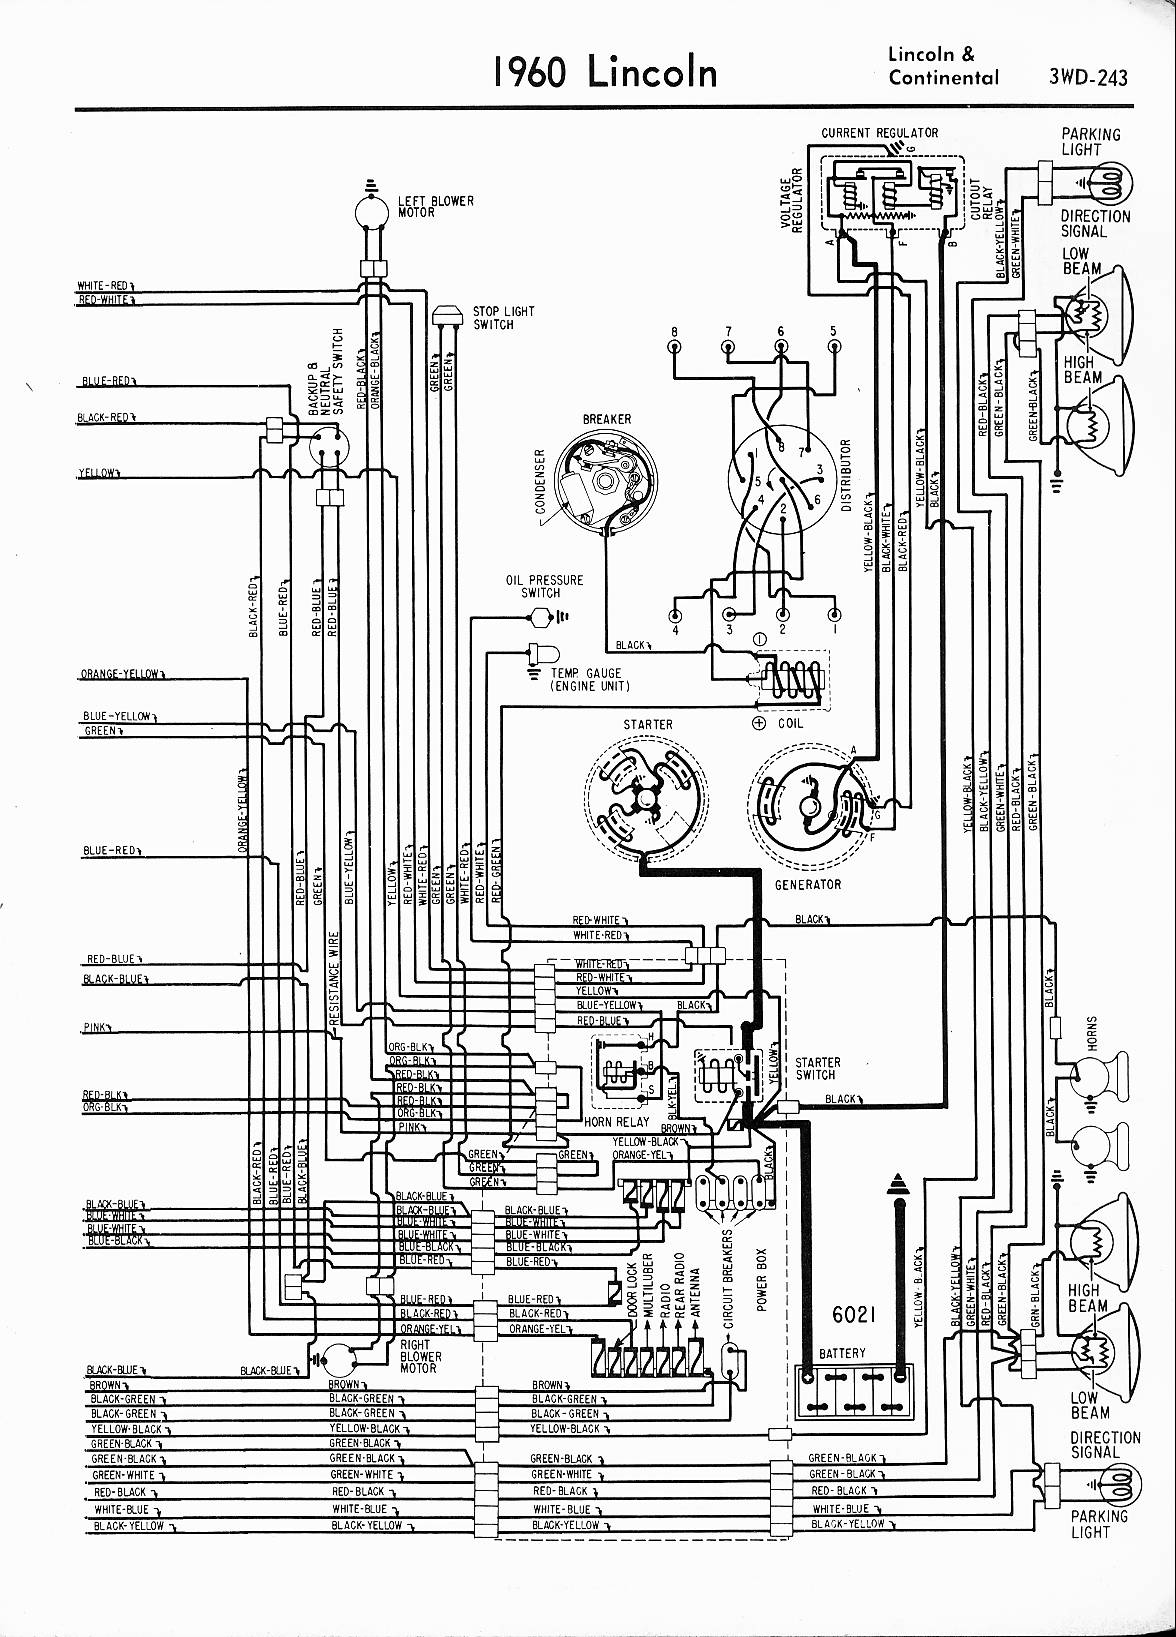 66 Lincoln Continental Engine Wiring Diagram - Great Installation Of on automatic choke wiring diagram, throttle body wiring diagram, electric antenna wiring diagram, electric clock wiring diagram, electric fuel pumps for carbureted engines, 91 ford ranger fuel pump diagram, holley fuel pump diagram, fuel pump relay diagram, thermostat wiring diagram, fuel pump circuit diagram, electric fan wiring diagram, backup lights wiring diagram, fuel gauge wiring diagram, fuel injector wiring diagram, ford f-350 super duty wiring diagram, 1998 buick lesabre fuel pump diagram, gm fuel pump connector diagram, international 8100 fuel diagram, fuel system wiring diagram, fan relay wiring diagram,